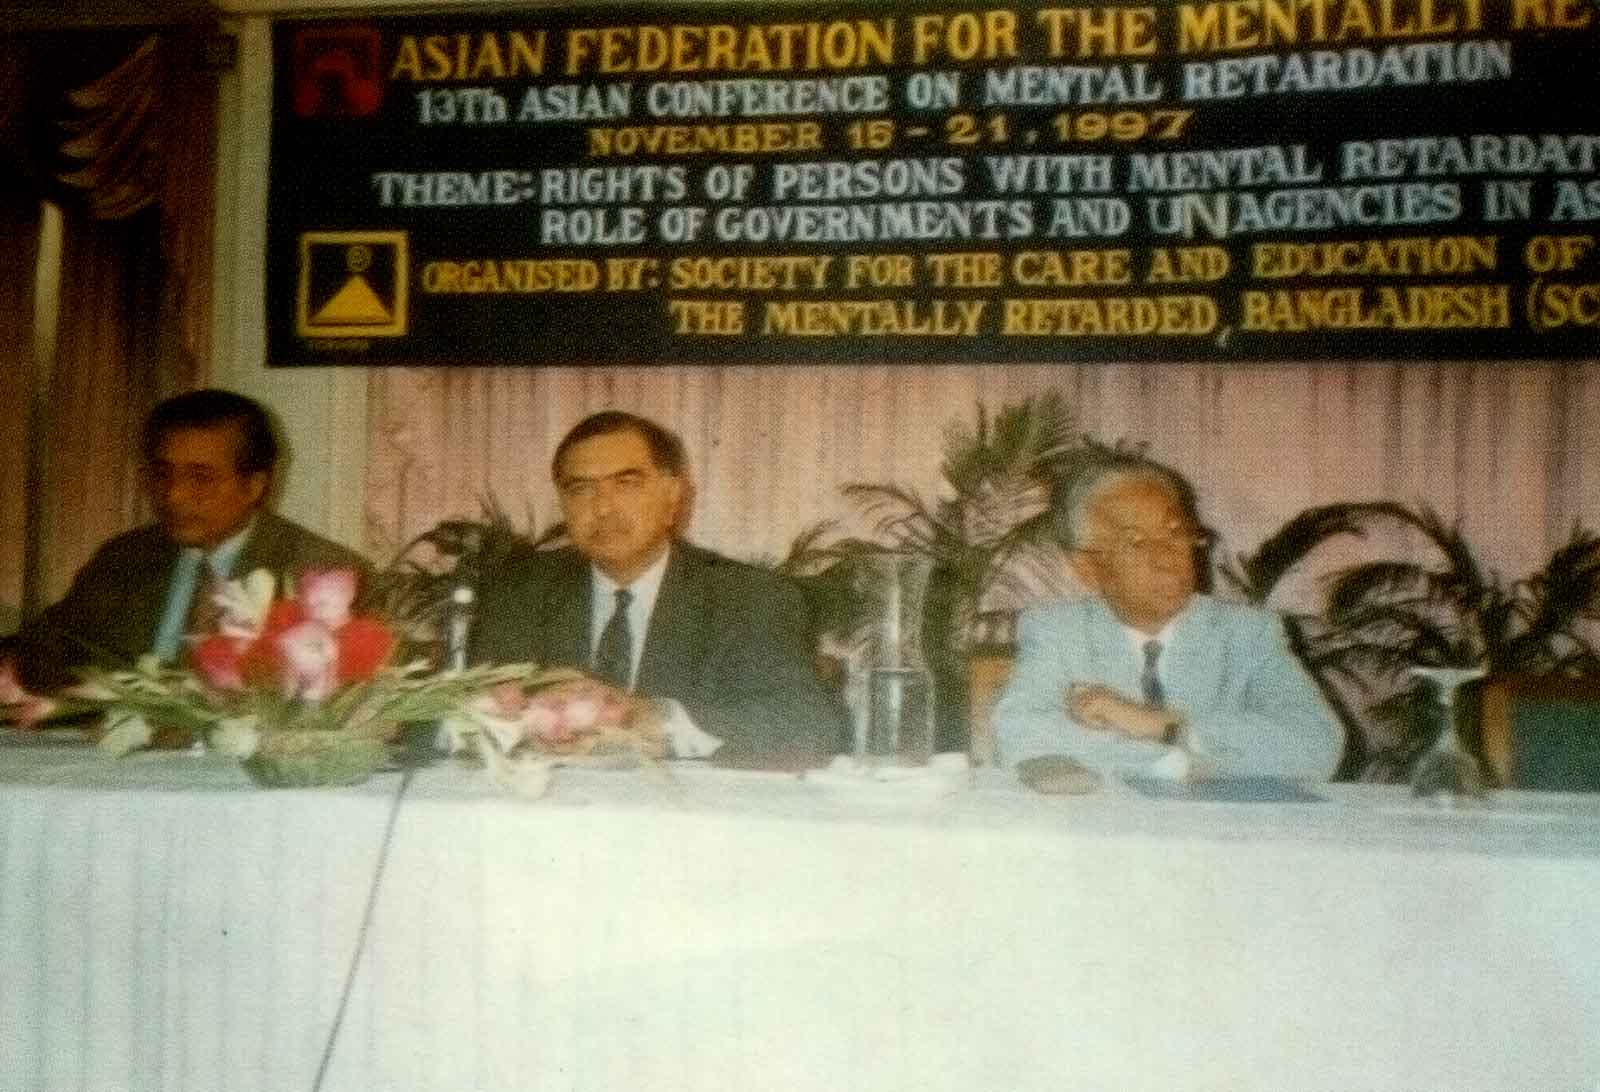 Honorable guests at the 13th ACMR Bangladesh, 1997